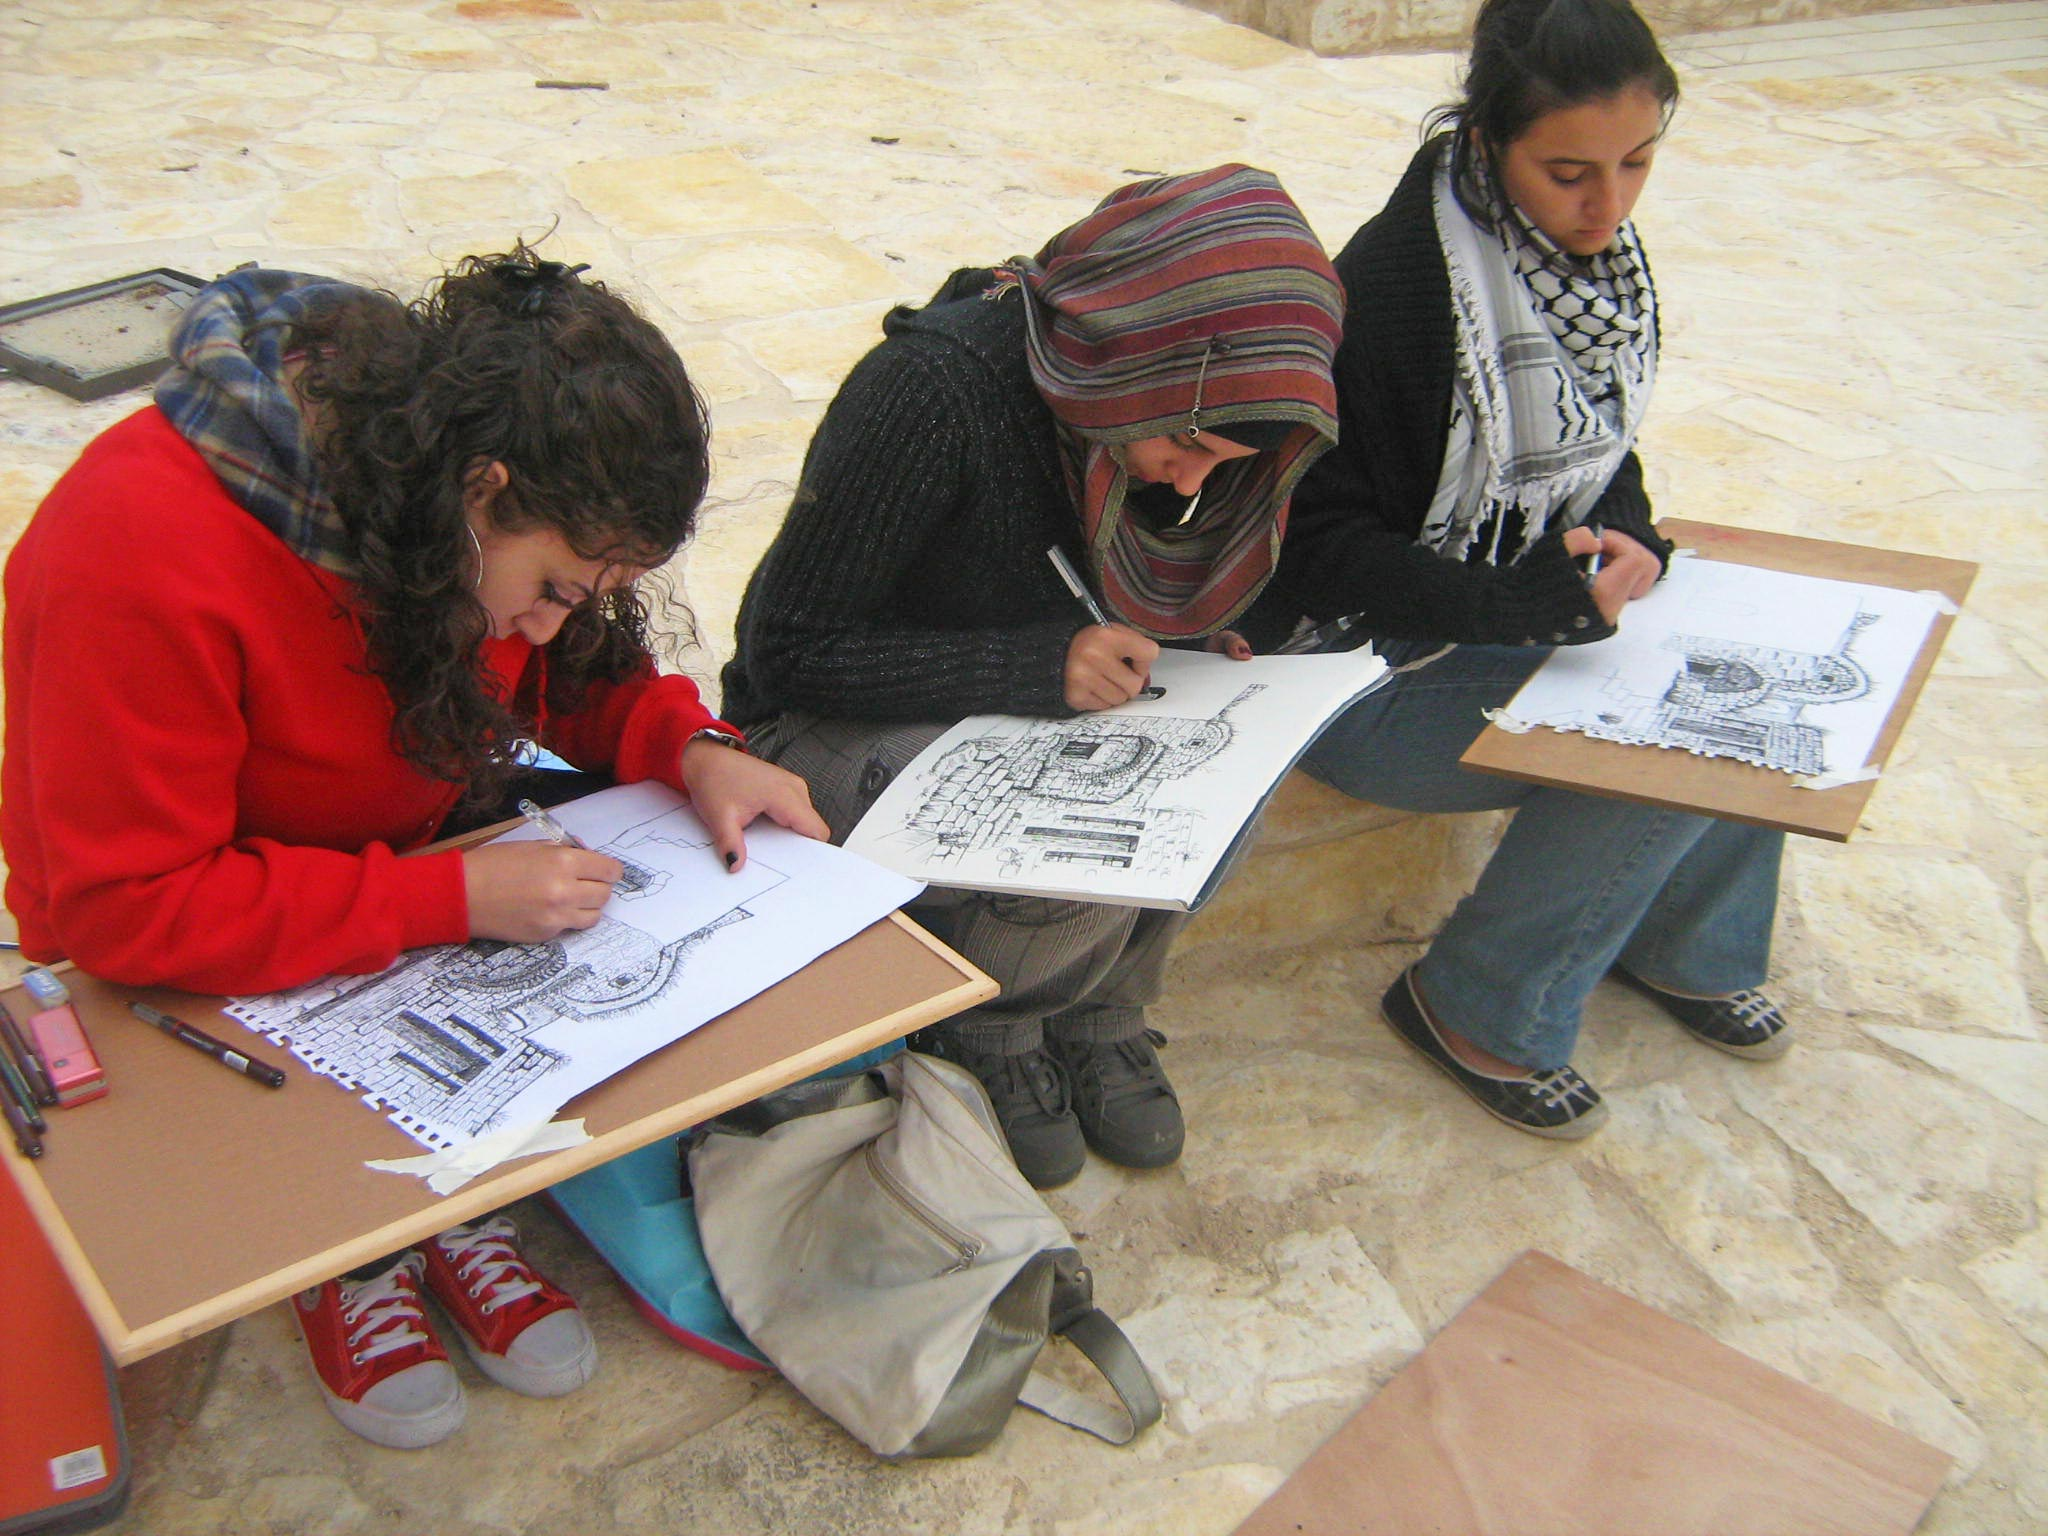 University students sketching buildings for a Riwaq competition. Organized by Riwaq, the Tom Kay Award supports Palestinian engineering students with the aim of encouraging them to spend less time in front of computer screens, and to carry their sketchbooks and pencils to explore, appreciate, draw, and document Palestinian architectural heritage. Image Credit: Riwaq Photo Archive